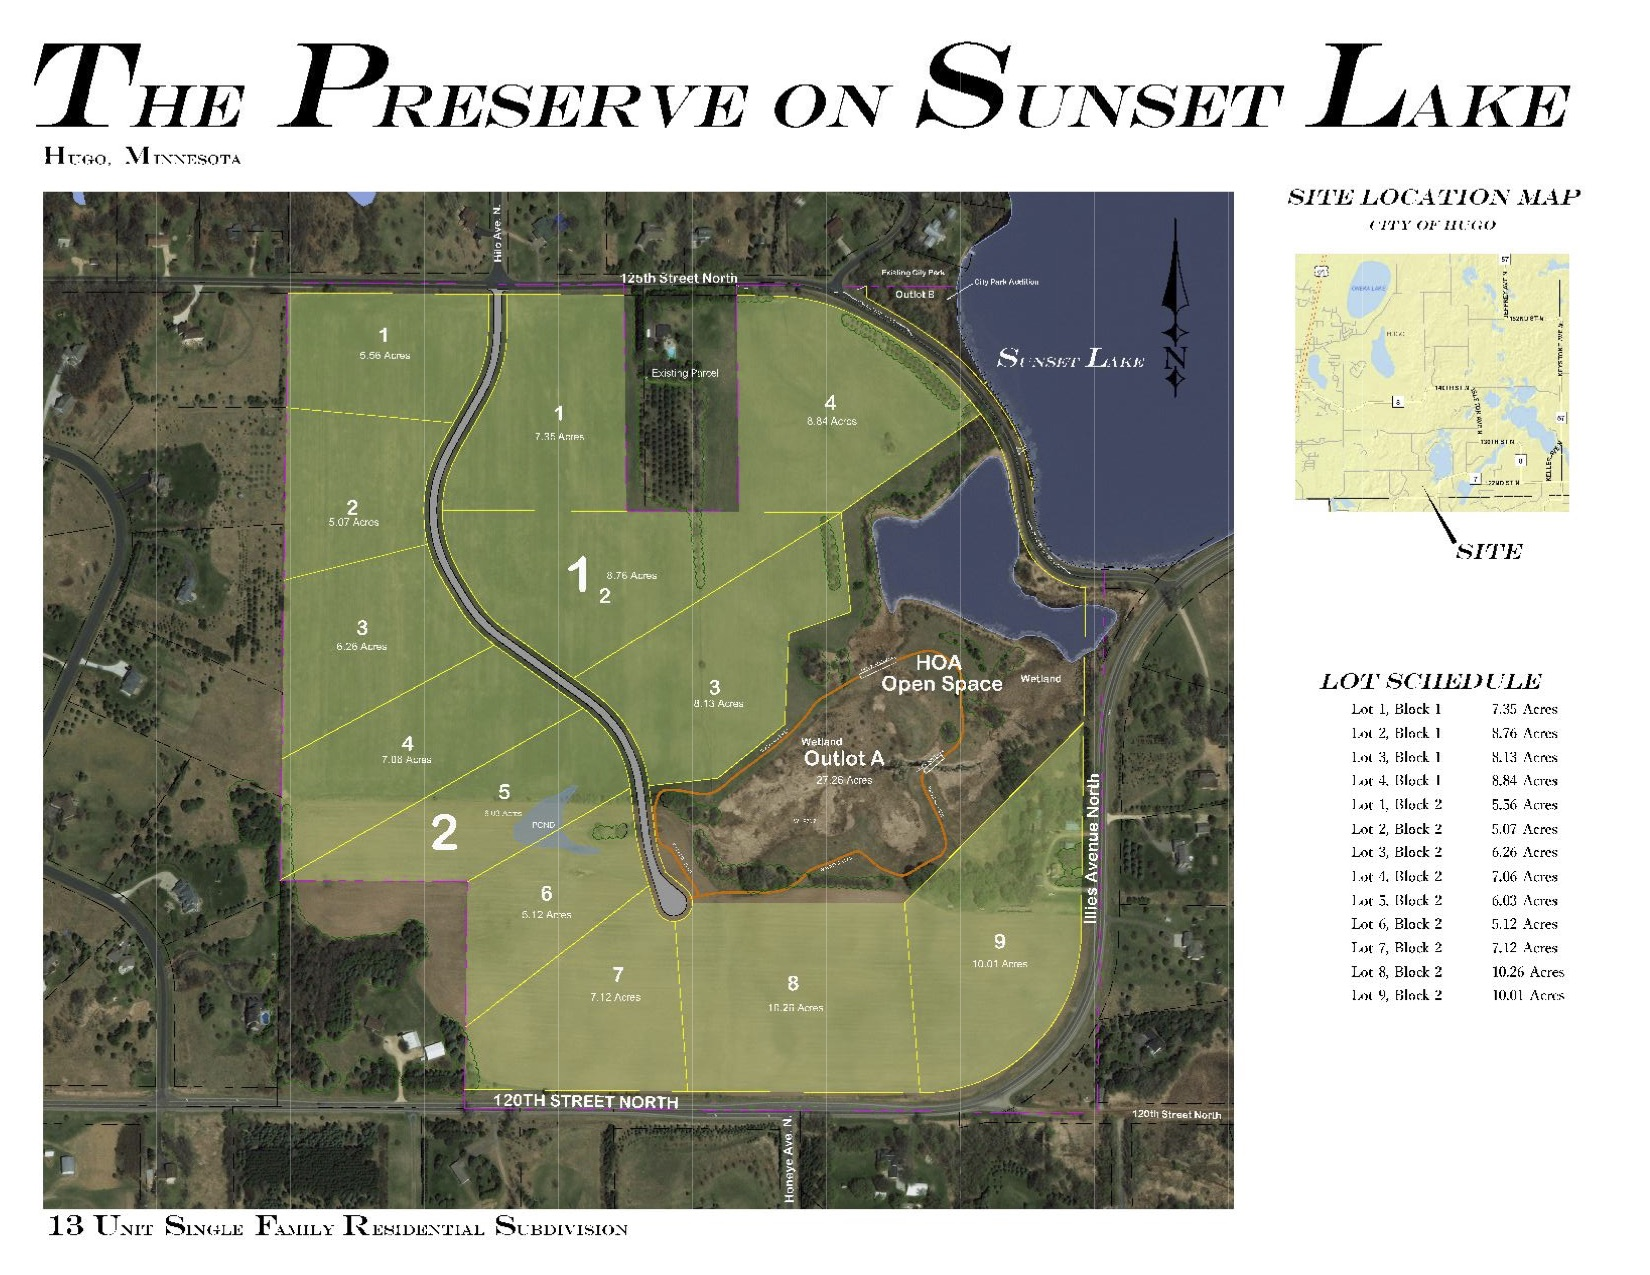 New, proposed development in eastern Hugo and Mahtomedi Schools. This parcel is 137 acres with 13 proposed lots and shows how land can be developed at a smaller lot size than is allowed in the zoning code. These parcels are classified as rural residential according to the City zoning map, which is 1 parcel of land per 10 acres. As you can see, most of these lots are less than 10 acres. However, if you take the total acreage of 137 acres and divide by the number of platted lots (13), it works out to a density of 1 lot per 10 acres. The City allows this because it satisfies the density requirements per the zoning code. Additional land is set aside as an outlot or common space. All lots are required to have a minimum of 300 feet of road frontage either on the road and cul de sac that the developer is building or on 120th Street. Lot prices are from $250k - $379k with the builder Parent Custom Homes and sold by Edina Realty.  The development has been approved by the City council.